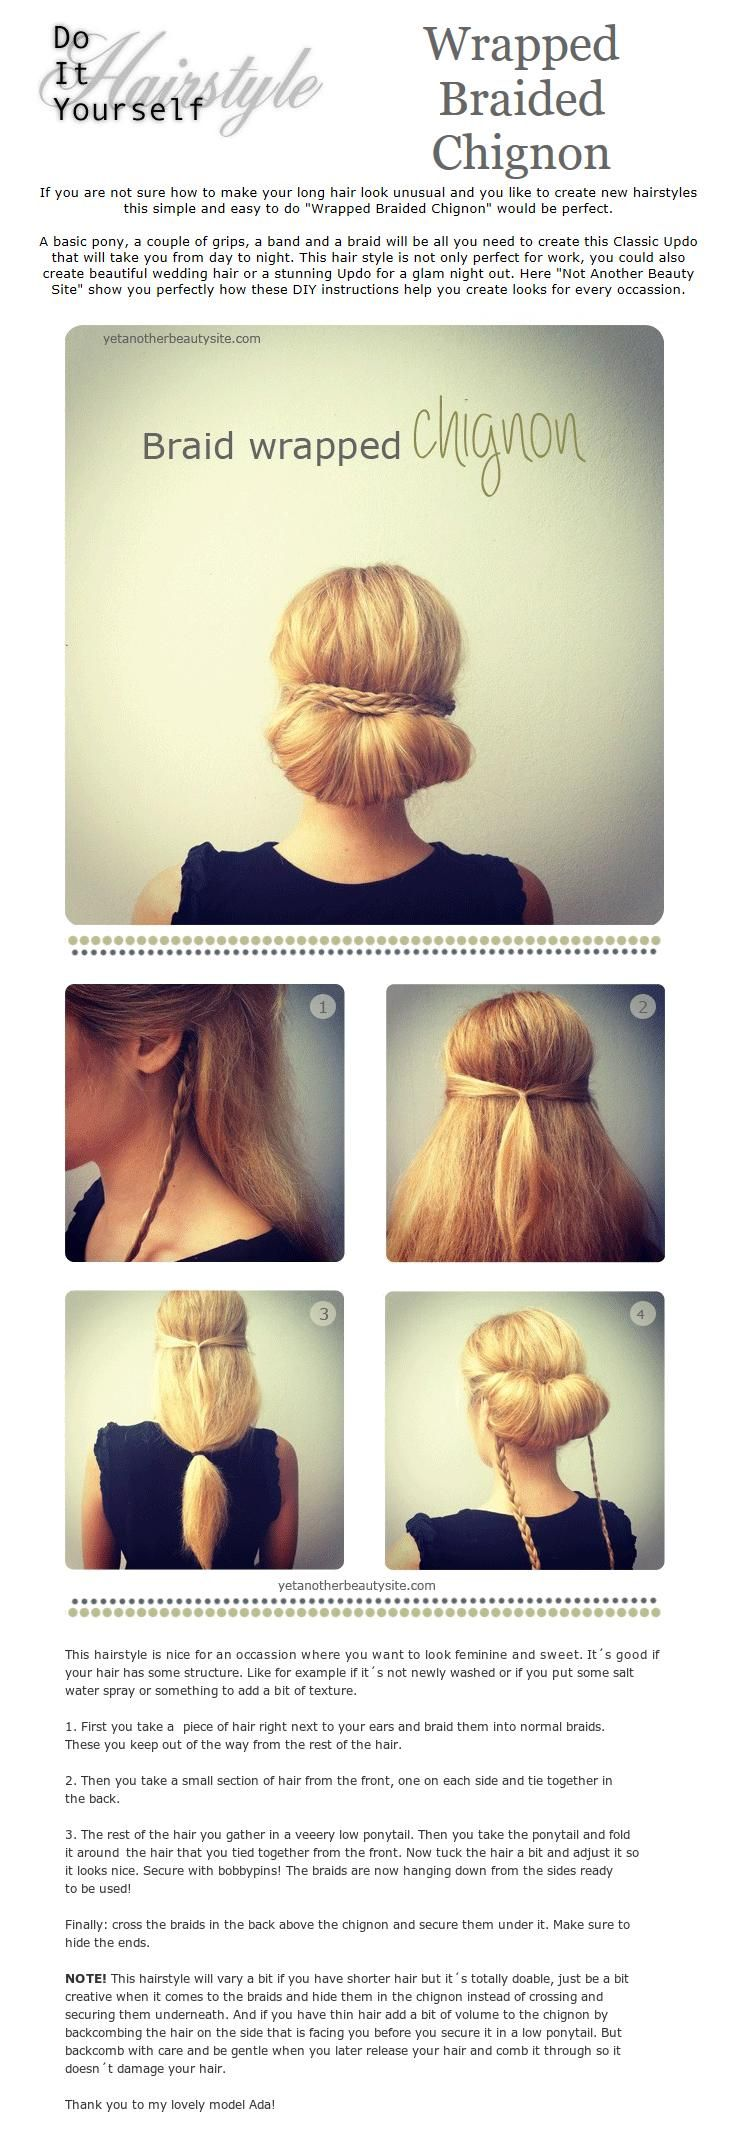 best hair images on pinterest curling fine hair cute hair and